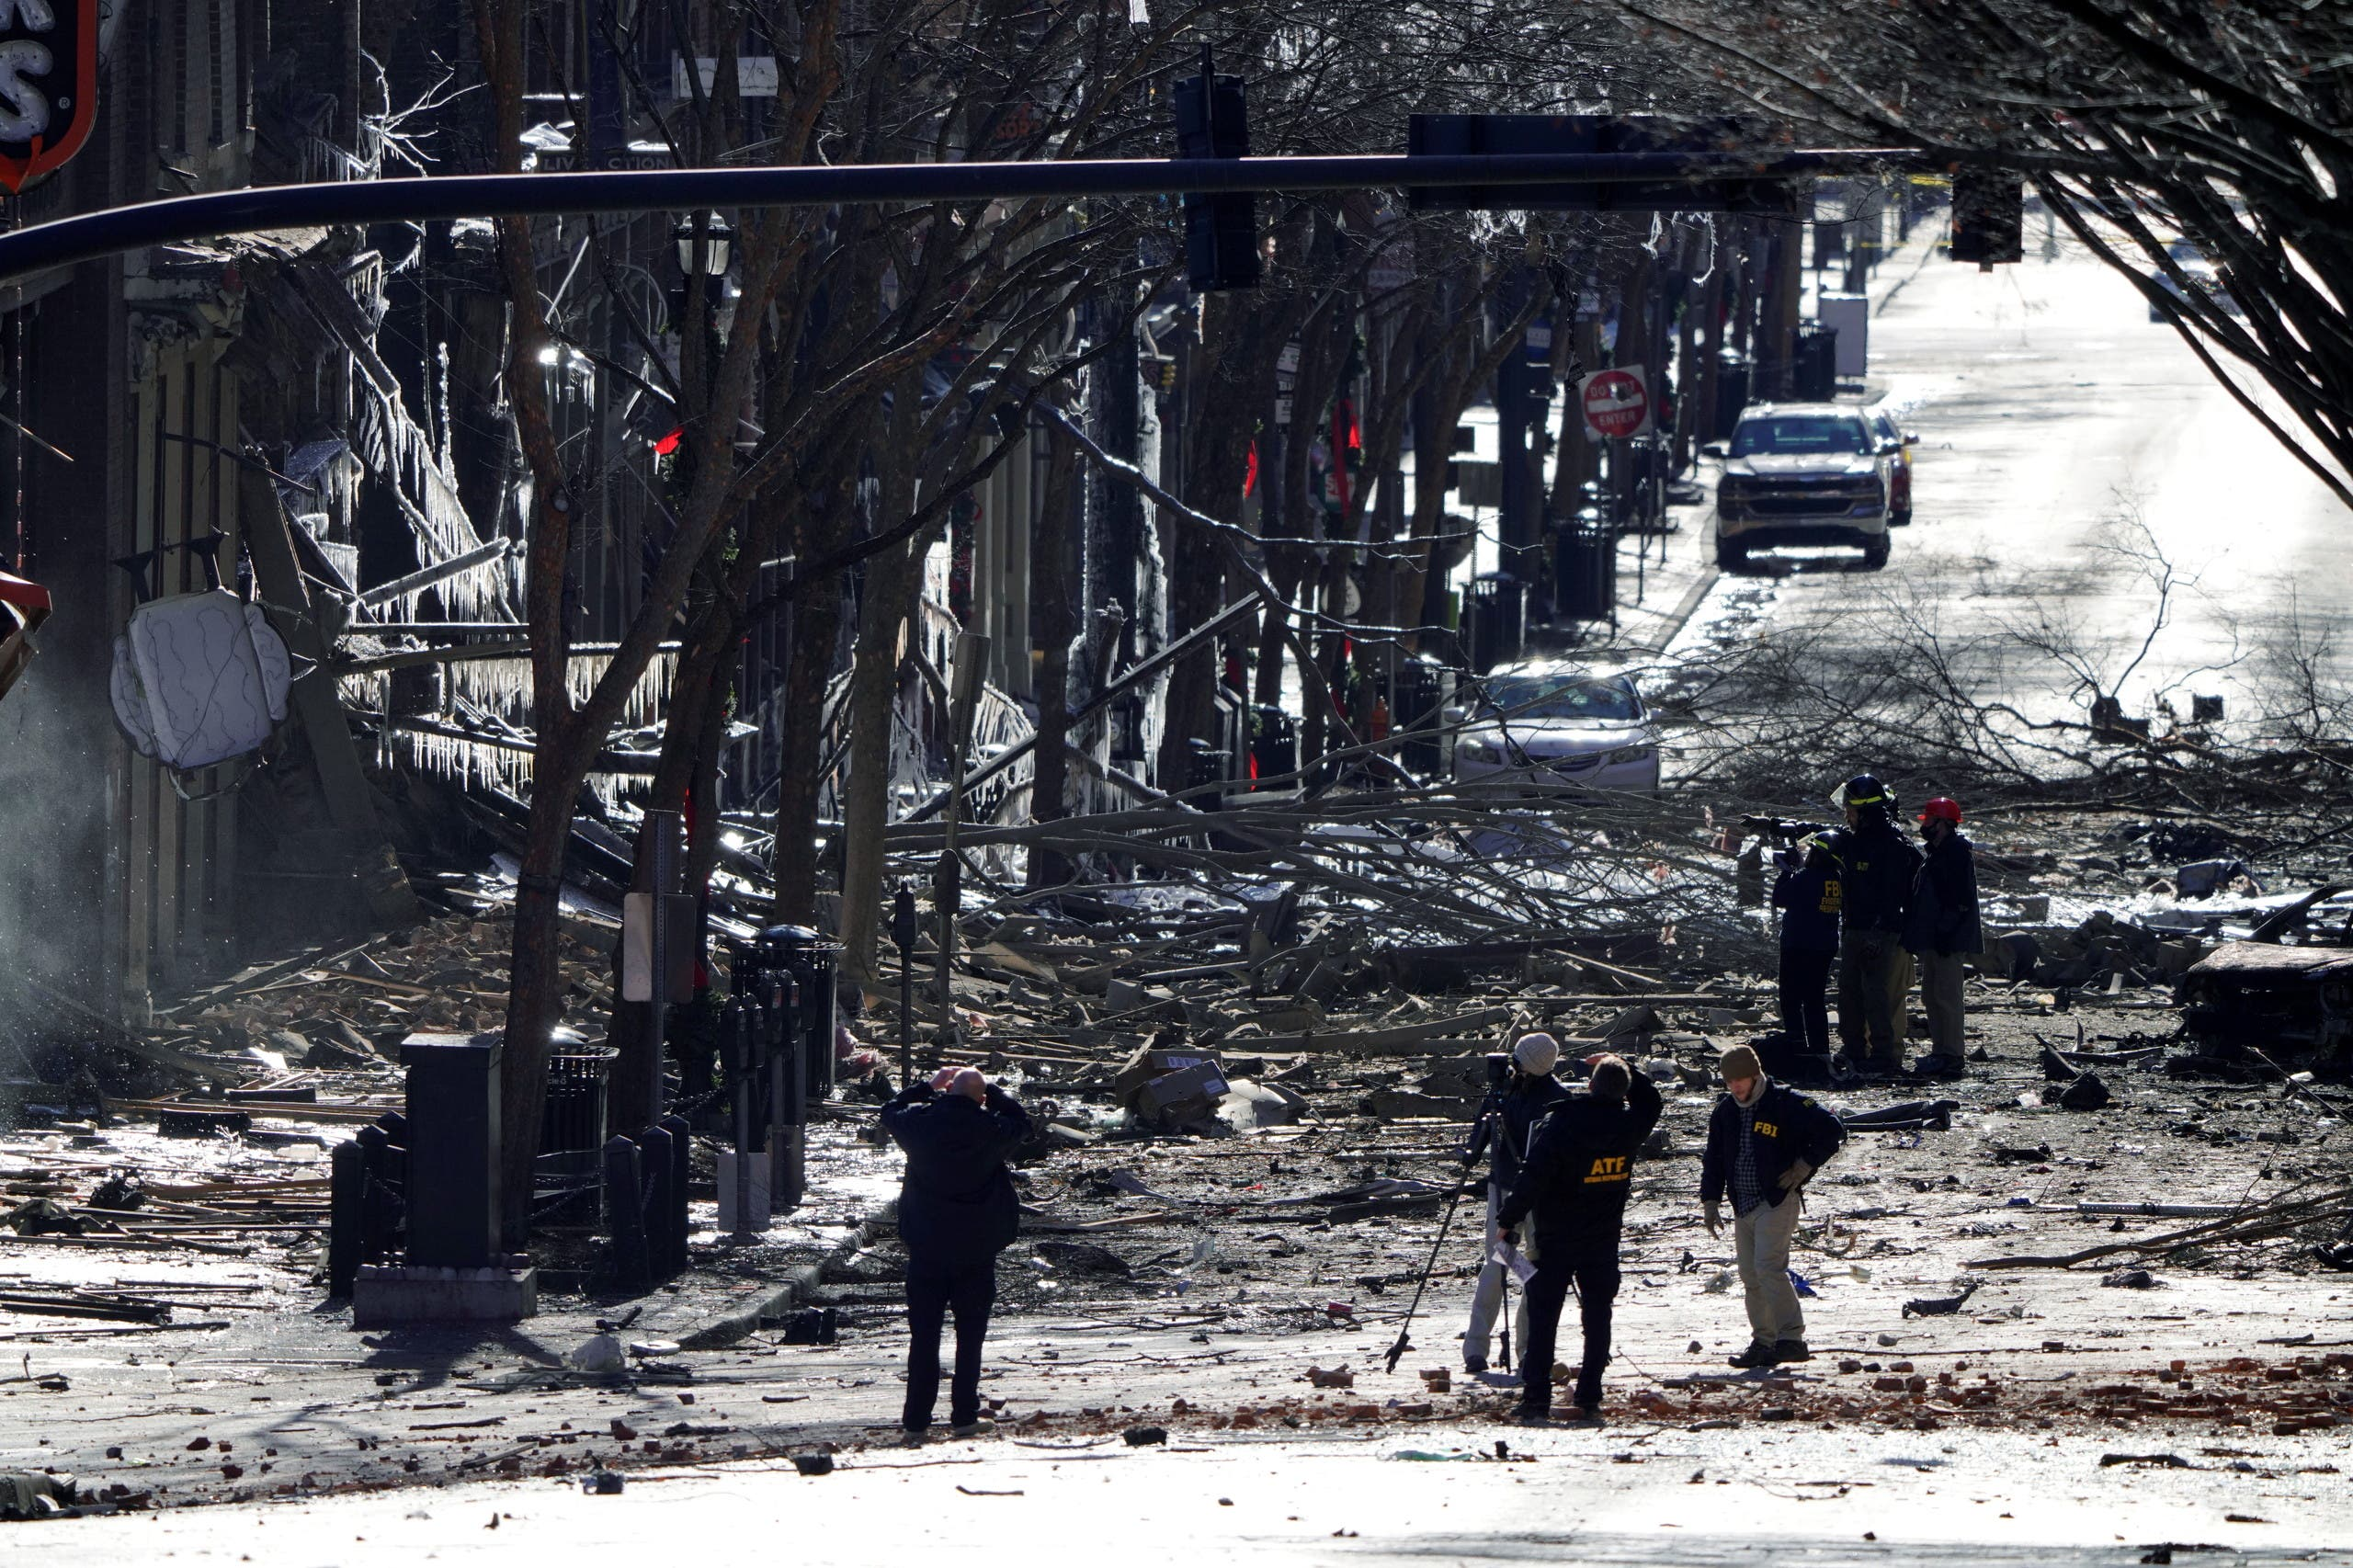 Investigators work near the site of an explosion on 2nd Avenue that occurred the day before in Nashville, Tennessee, US December 26, 2020. (Reuters)